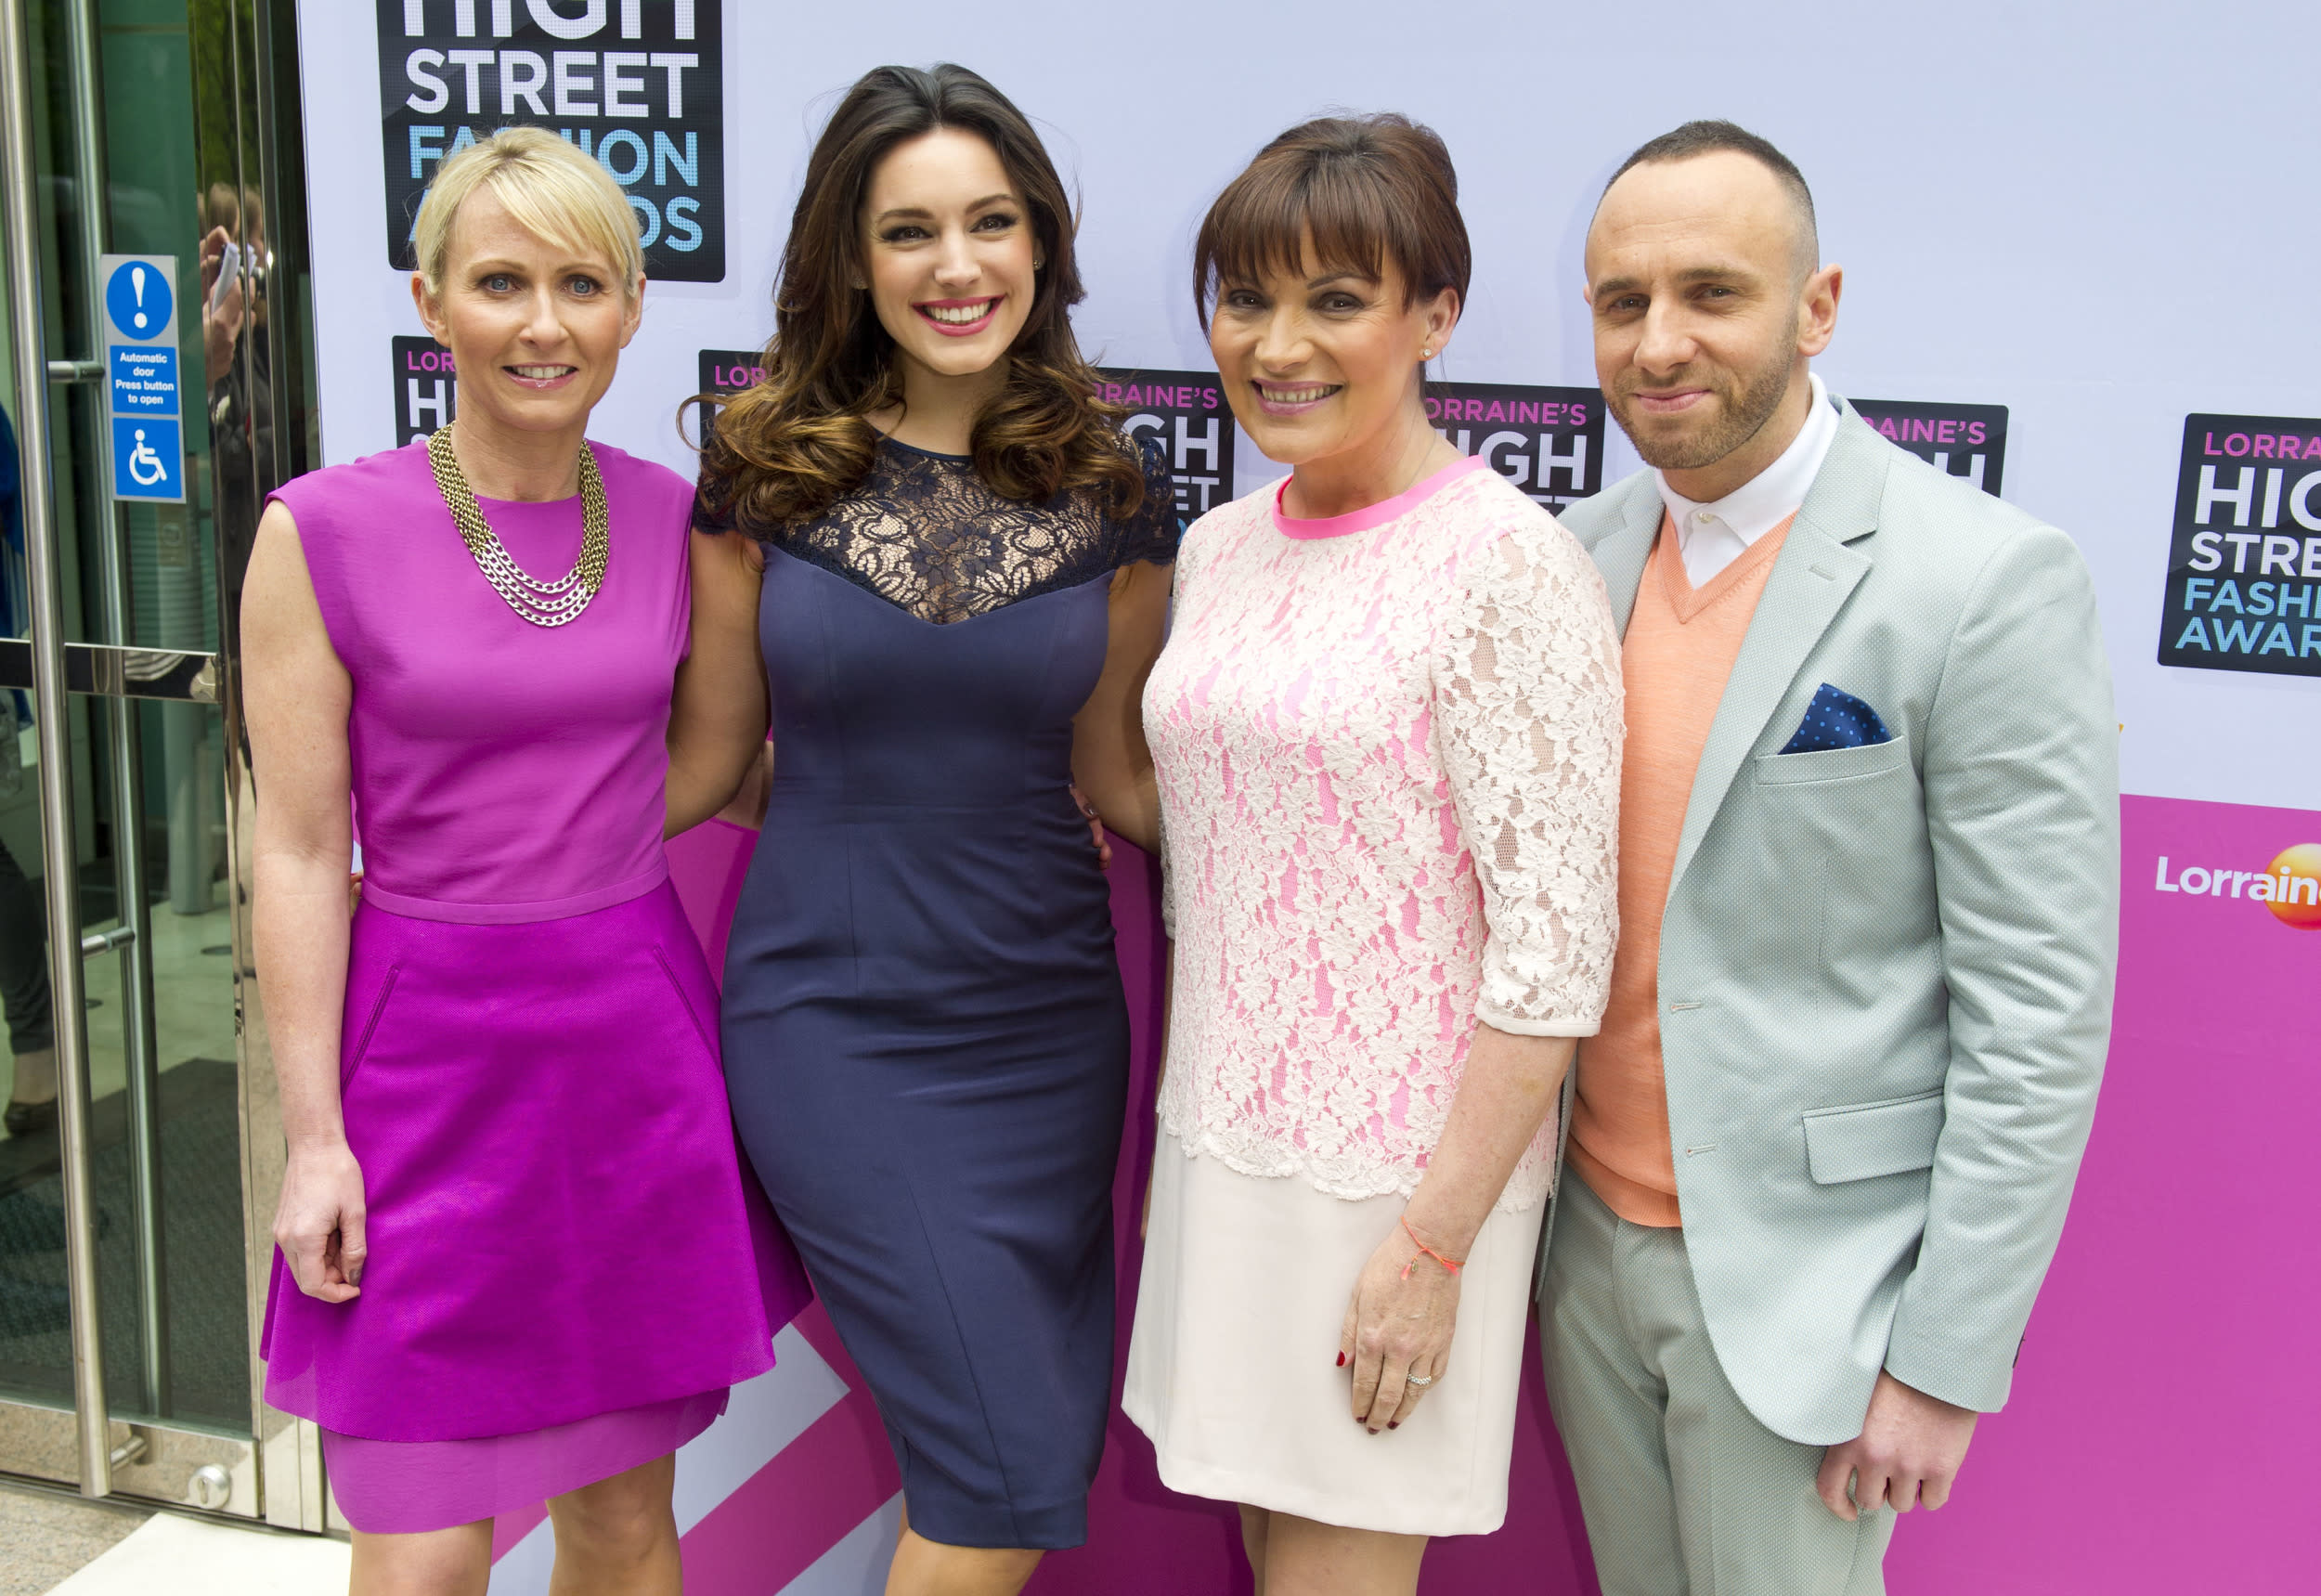 Ali Hall, Kelly Brook, Lorraine Kelly and Mark Heyes arriving at Lorraine's High Street Fashion Wards, at West Wintergarden in Canary Wharf, London.